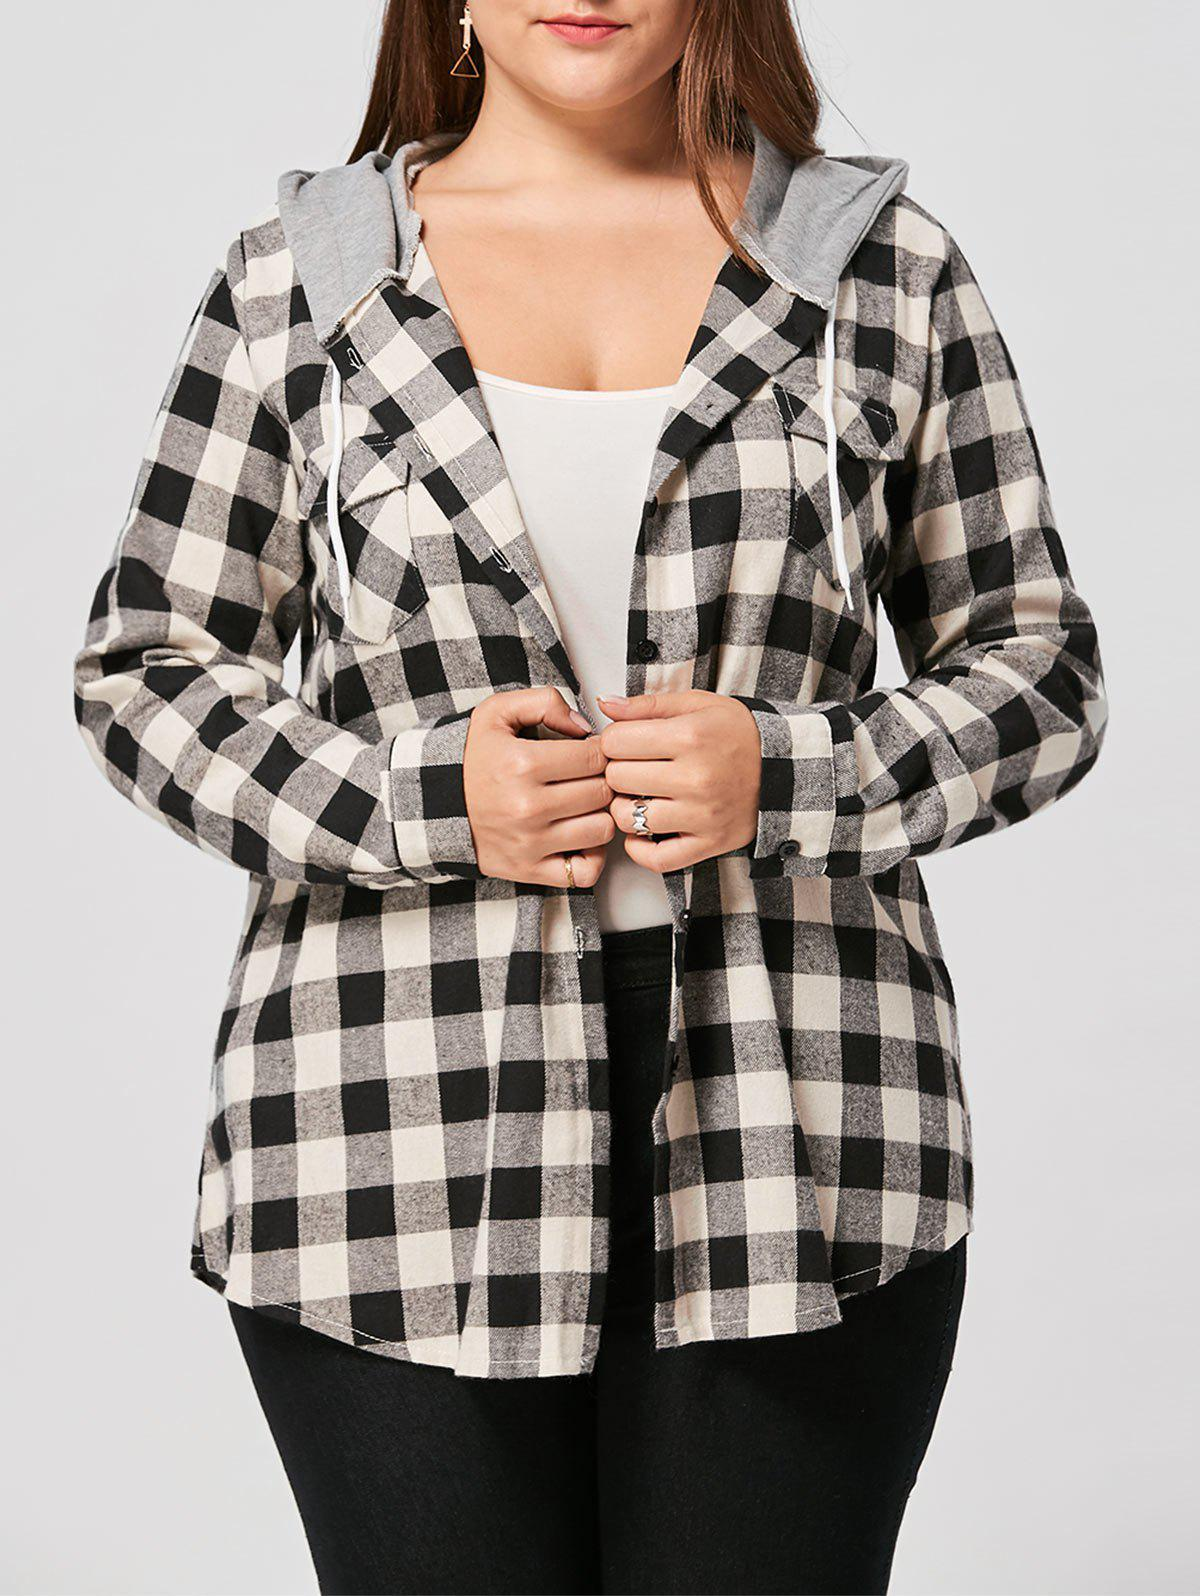 Plus Size Drawstring Neck Plaid Shirt HoodieWOMEN<br><br>Size: 3XL; Color: COLORMIX; Material: Polyester,Spandex; Shirt Length: Long; Sleeve Length: Full; Style: Casual; Pattern Style: Plaid; Season: Fall,Spring; Weight: 0.3700kg; Package Contents: 1 x Hoodie;